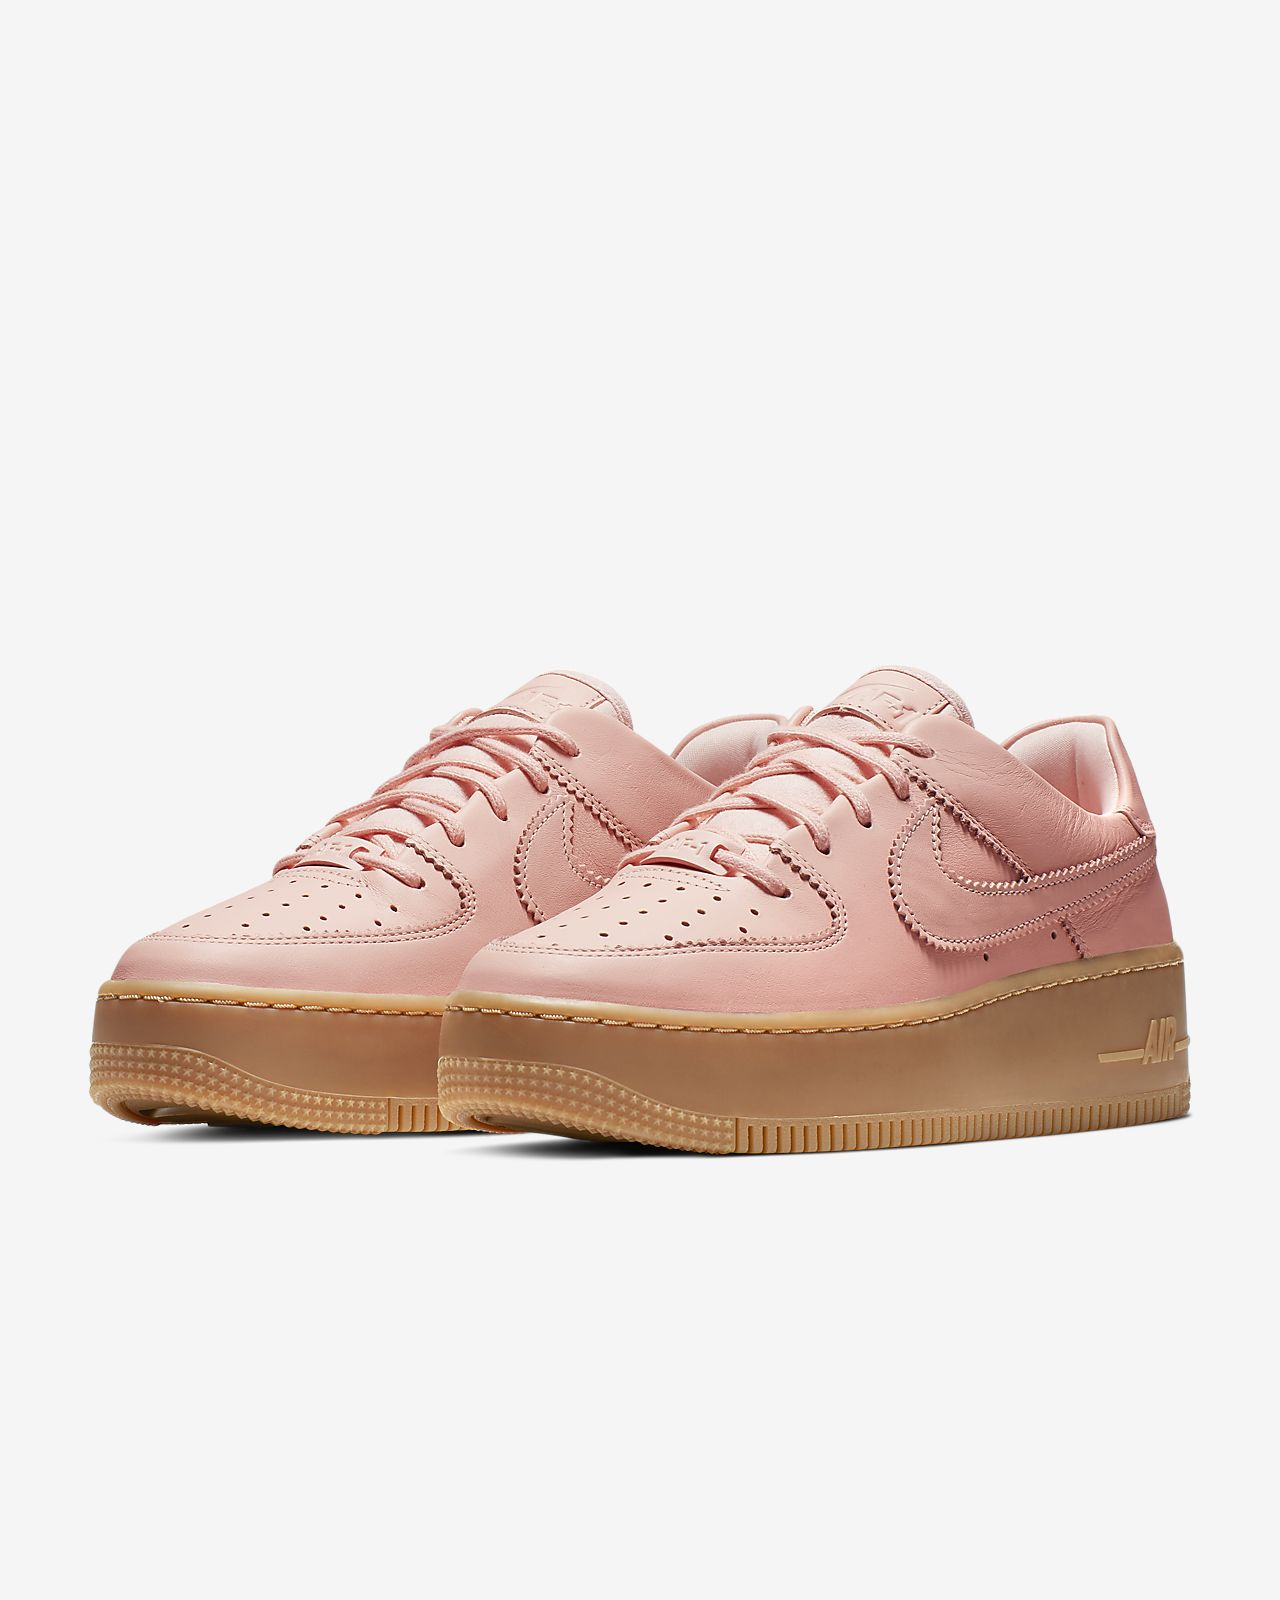 679f8ea7e8d2d Nike Air Force 1 Sage Low LX Women's Shoe. Nike.com